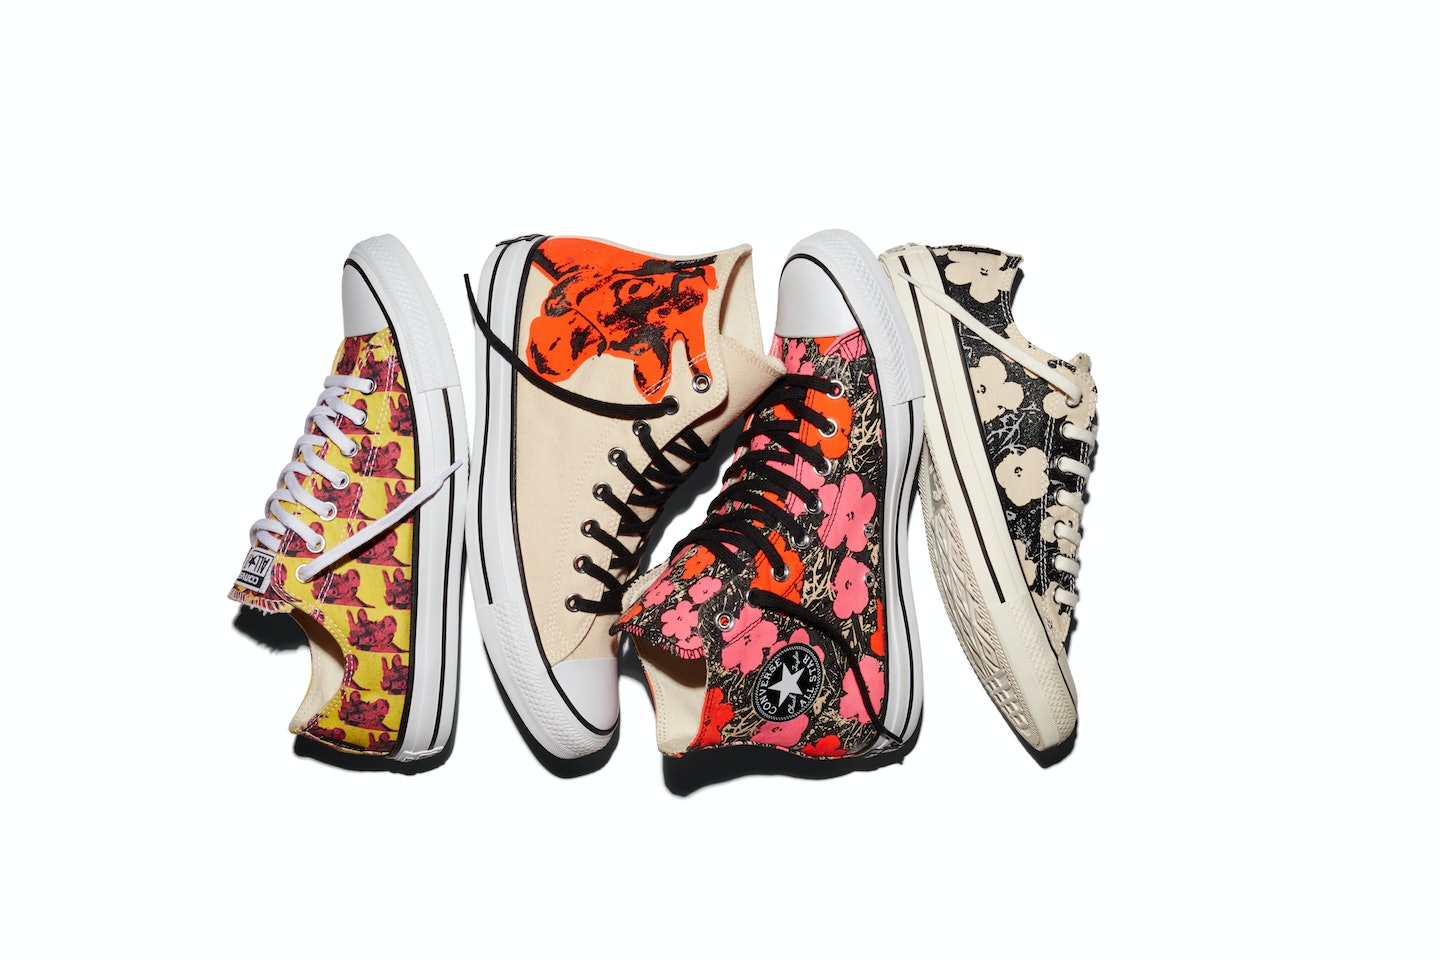 The Converse Andy Warhol Collection Is Here